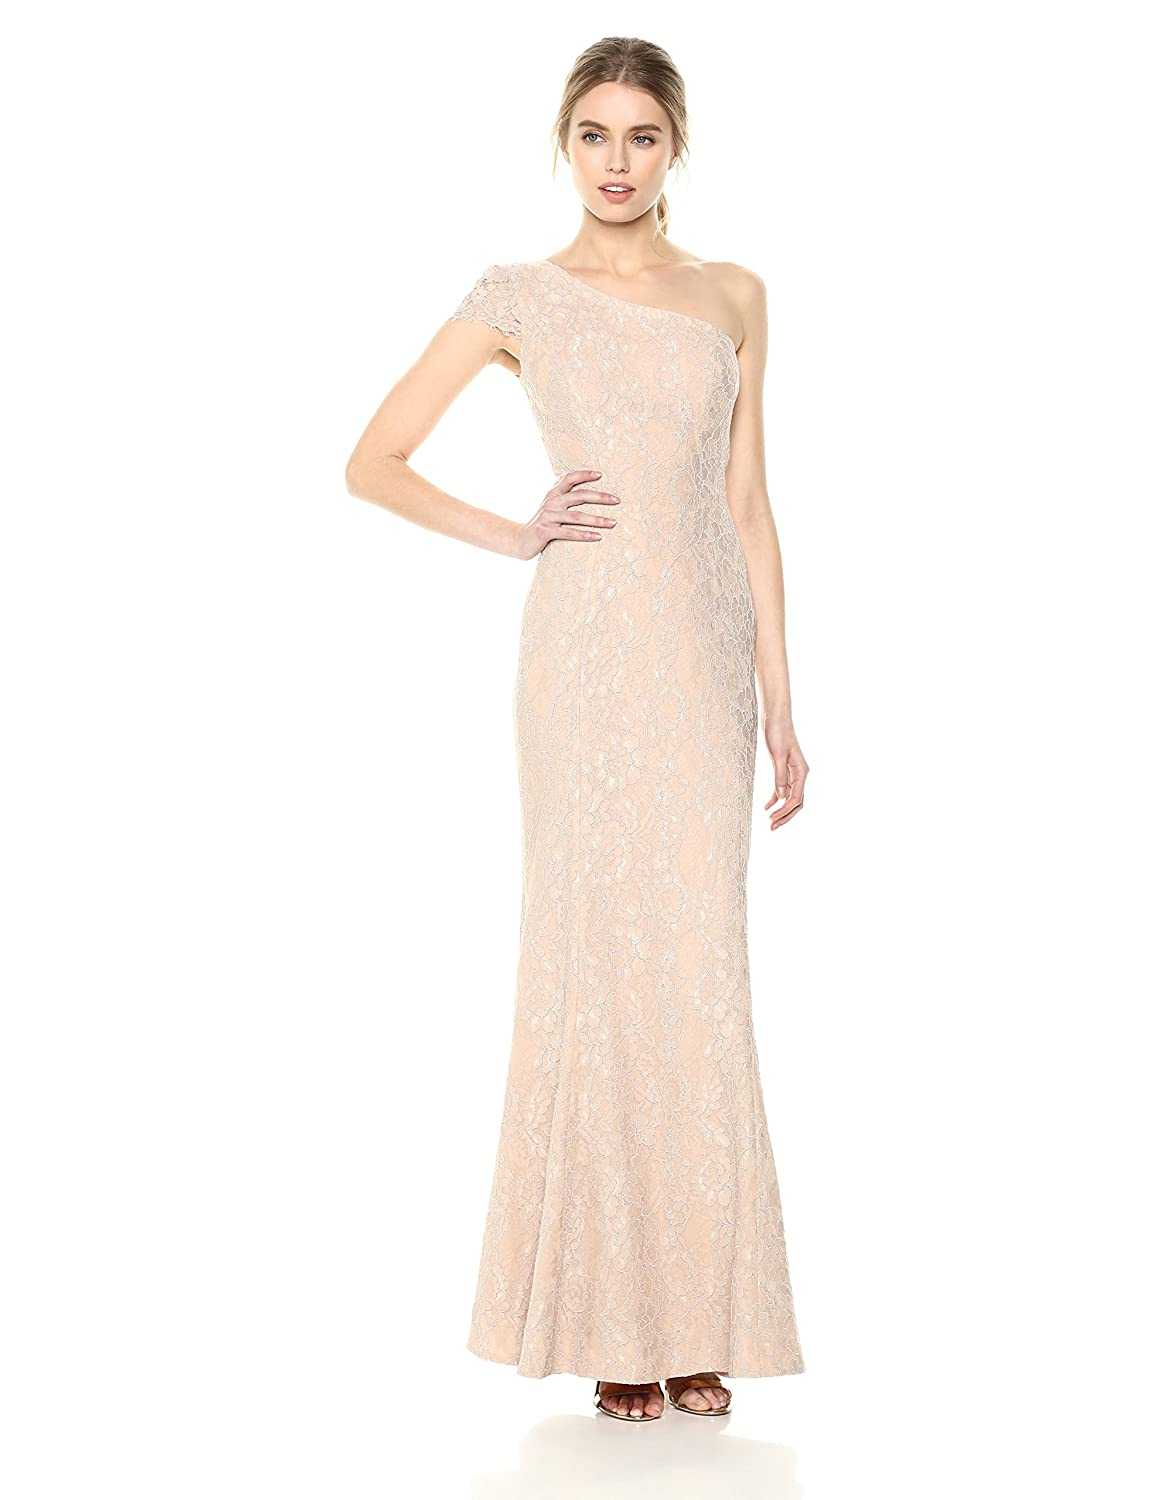 bluesh Nude Dress the Population Womens Valentina Lace Cap Sleeve One Shoulder Long Dress Special Occasion Dress